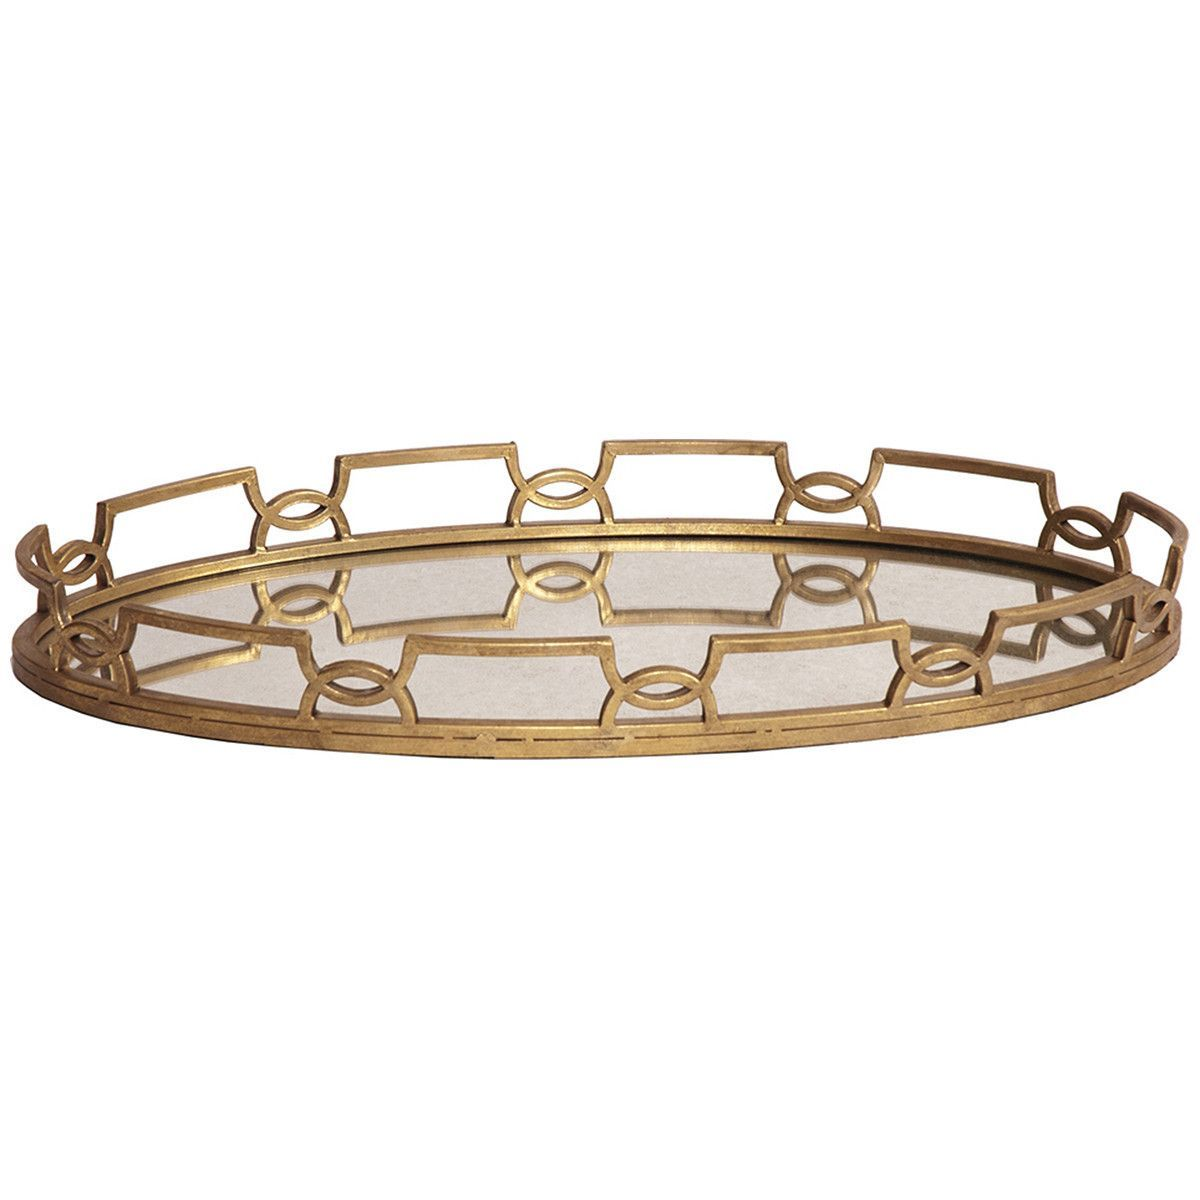 Howard elliott bright gold metal tray metal trays trays and bright howard elliott bright gold metal tray the howard elliott bright gold metal tray is a decorative serving platter with an antiqued mirrored surface thats geotapseo Image collections